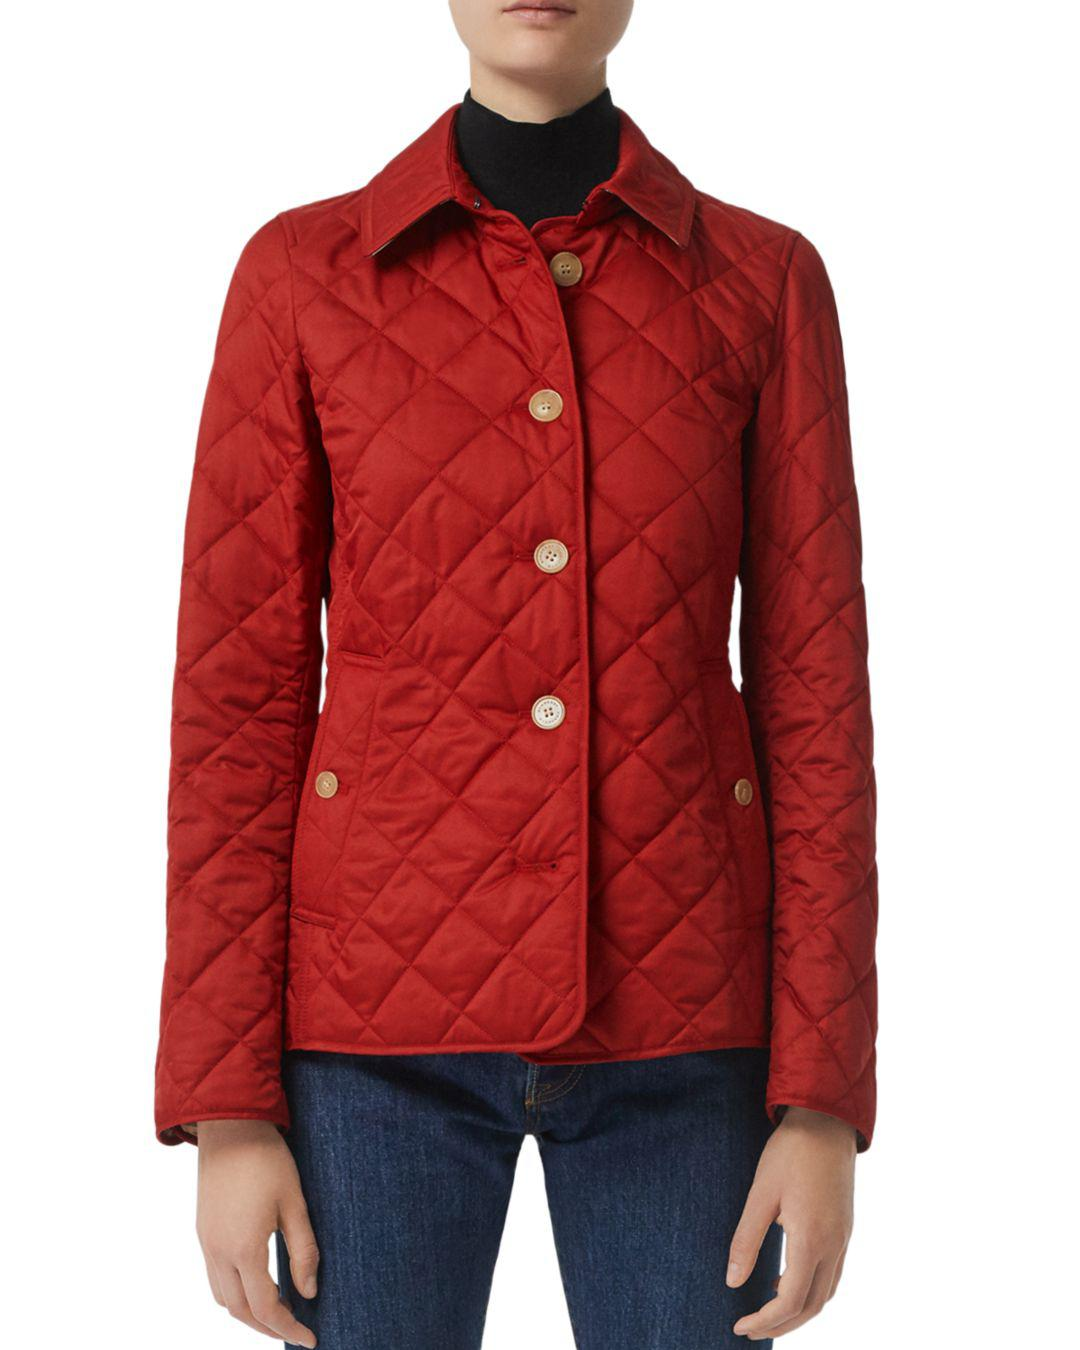 94ec2d77591fa Lyst - Burberry Frankby Quilted Jacket in Red - Save 15%